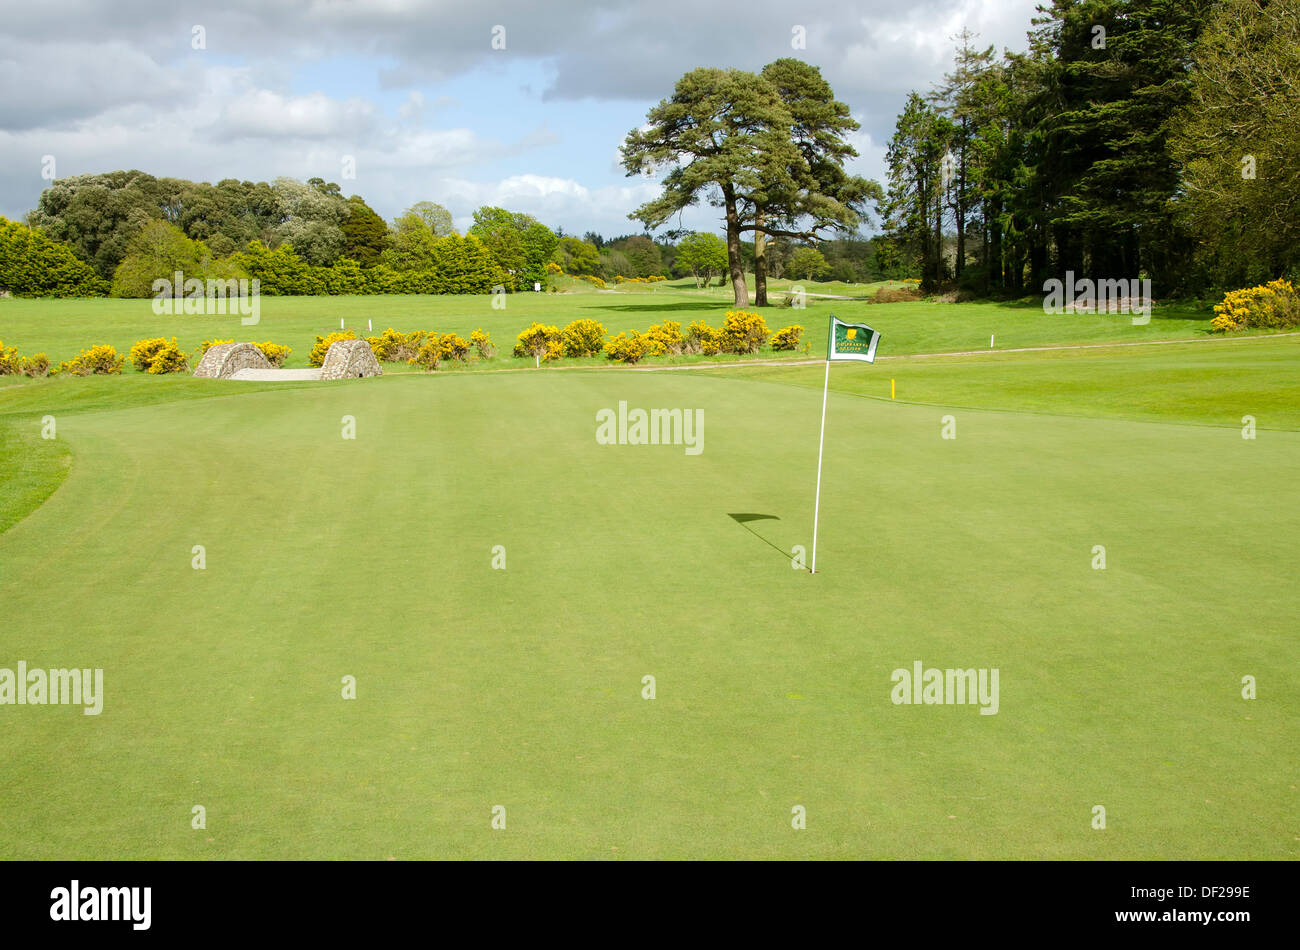 Castlemartyr Resort 18 hole, 6,790 yd, Par 72, inland links style course at County Cork, Ireland. - Stock Image